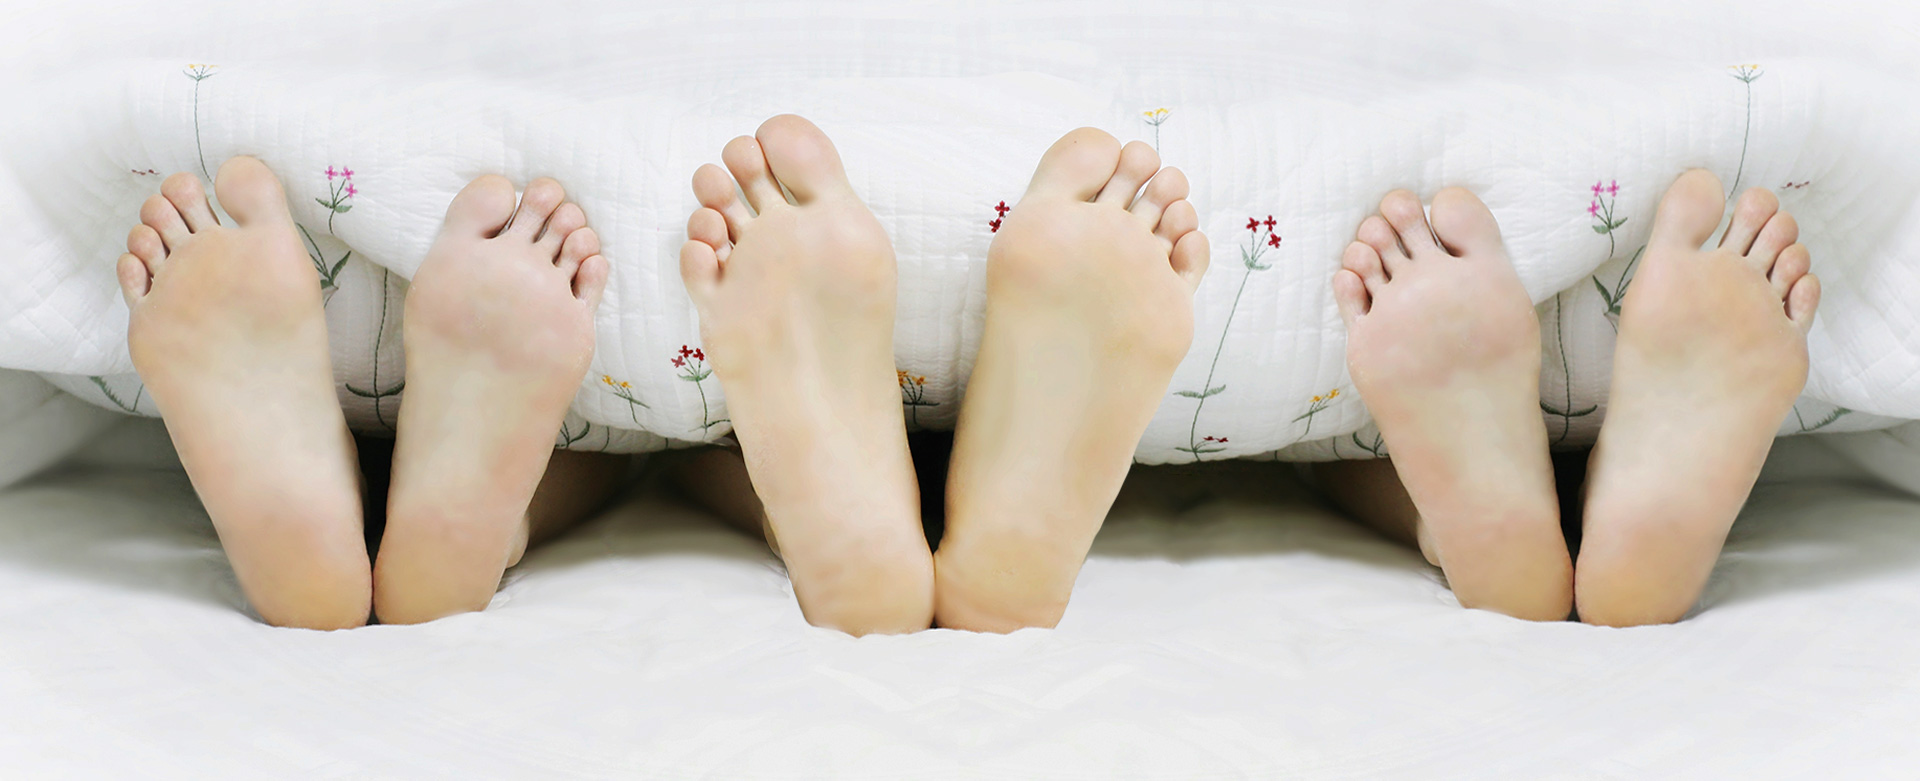 Three pairs of feet in a bed